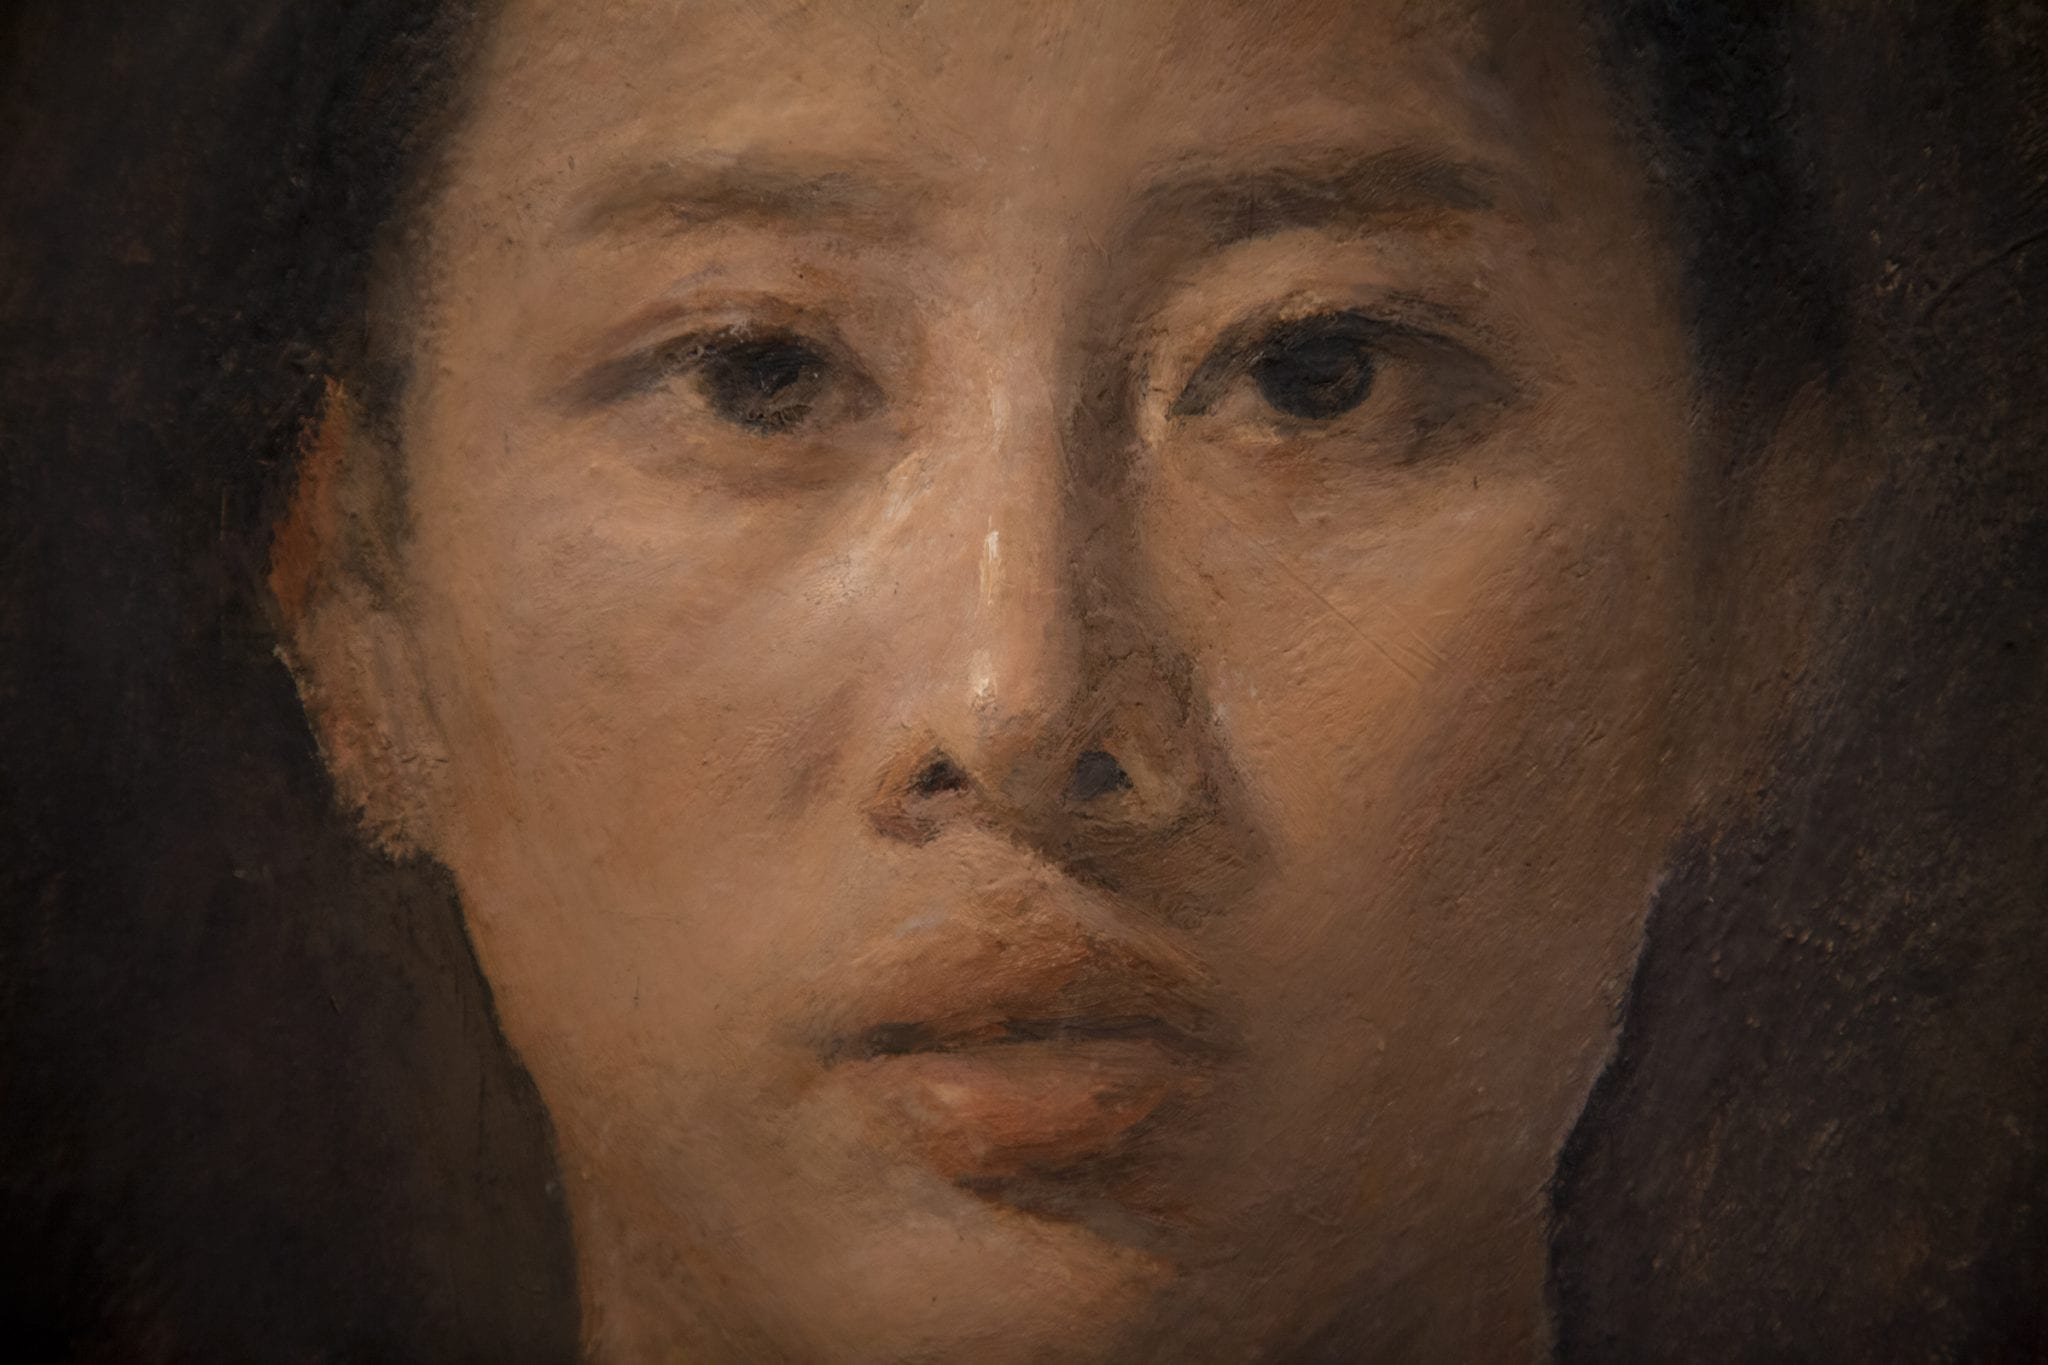 Classical Painting in China: Cheng Wu. Herland Report.